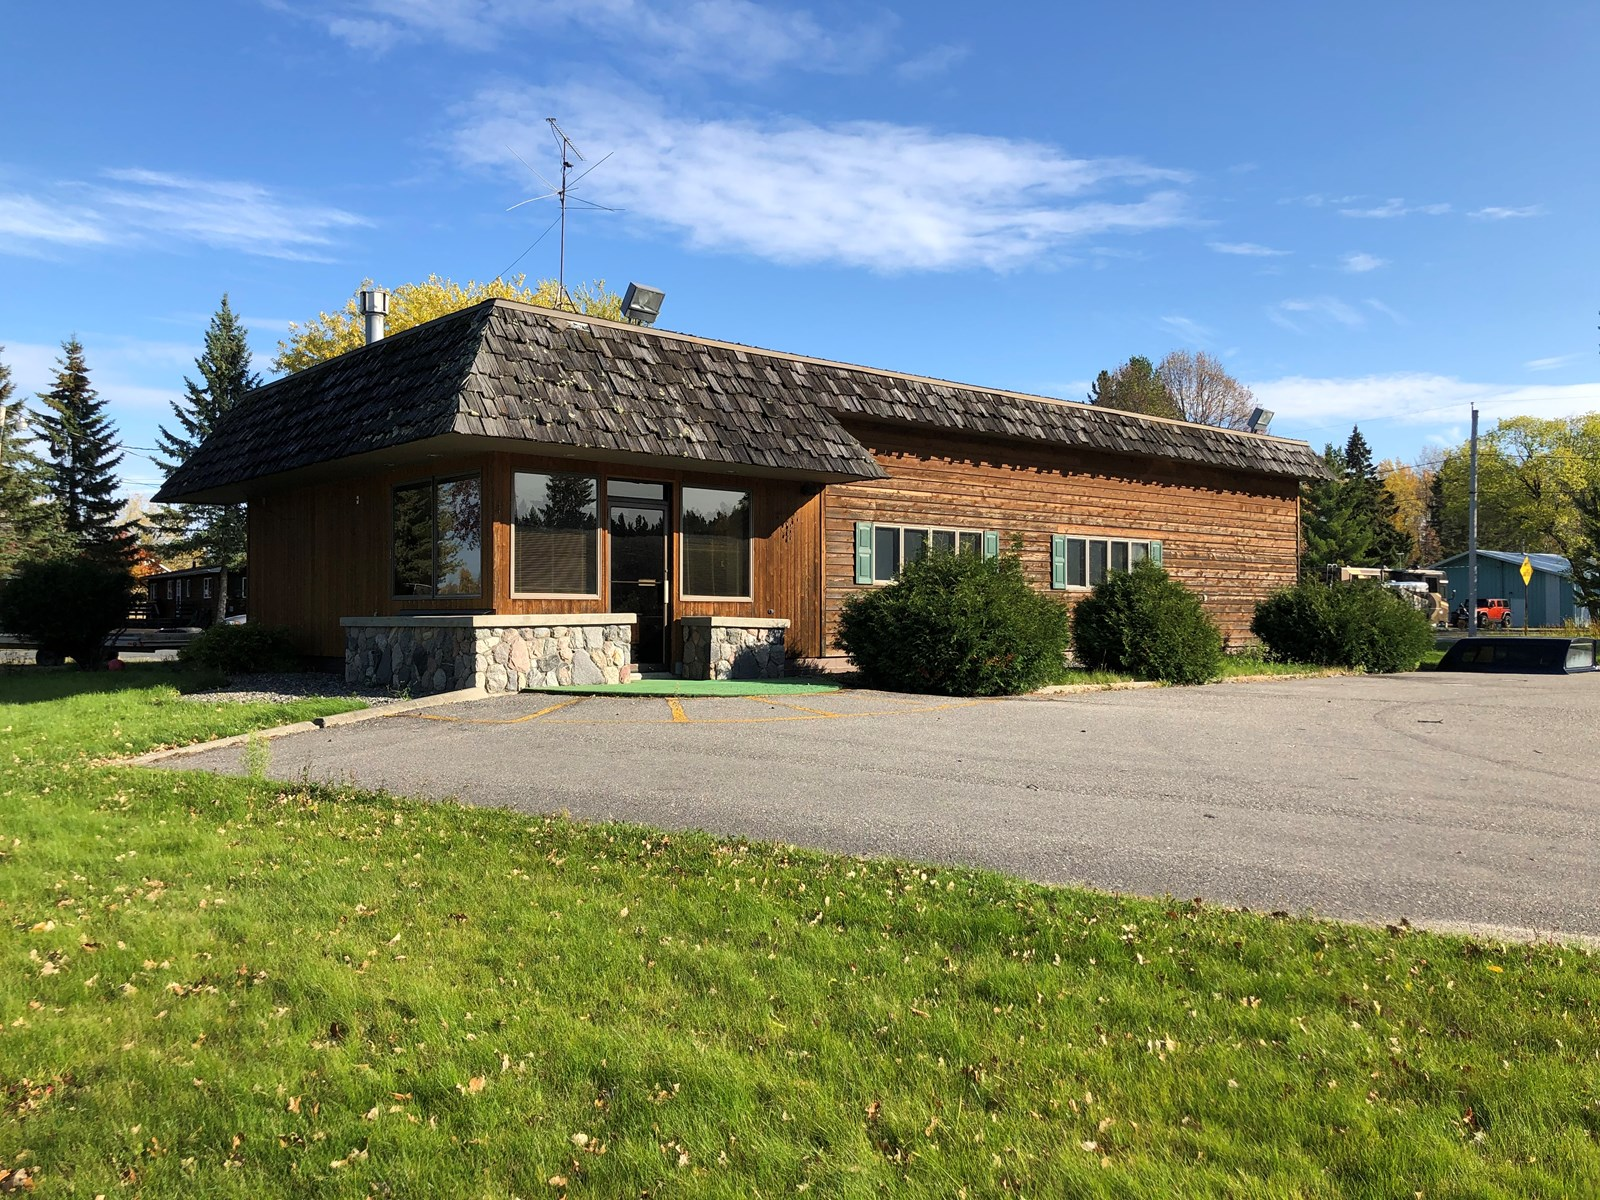 Commercial Property for Sale in International Falls, MN